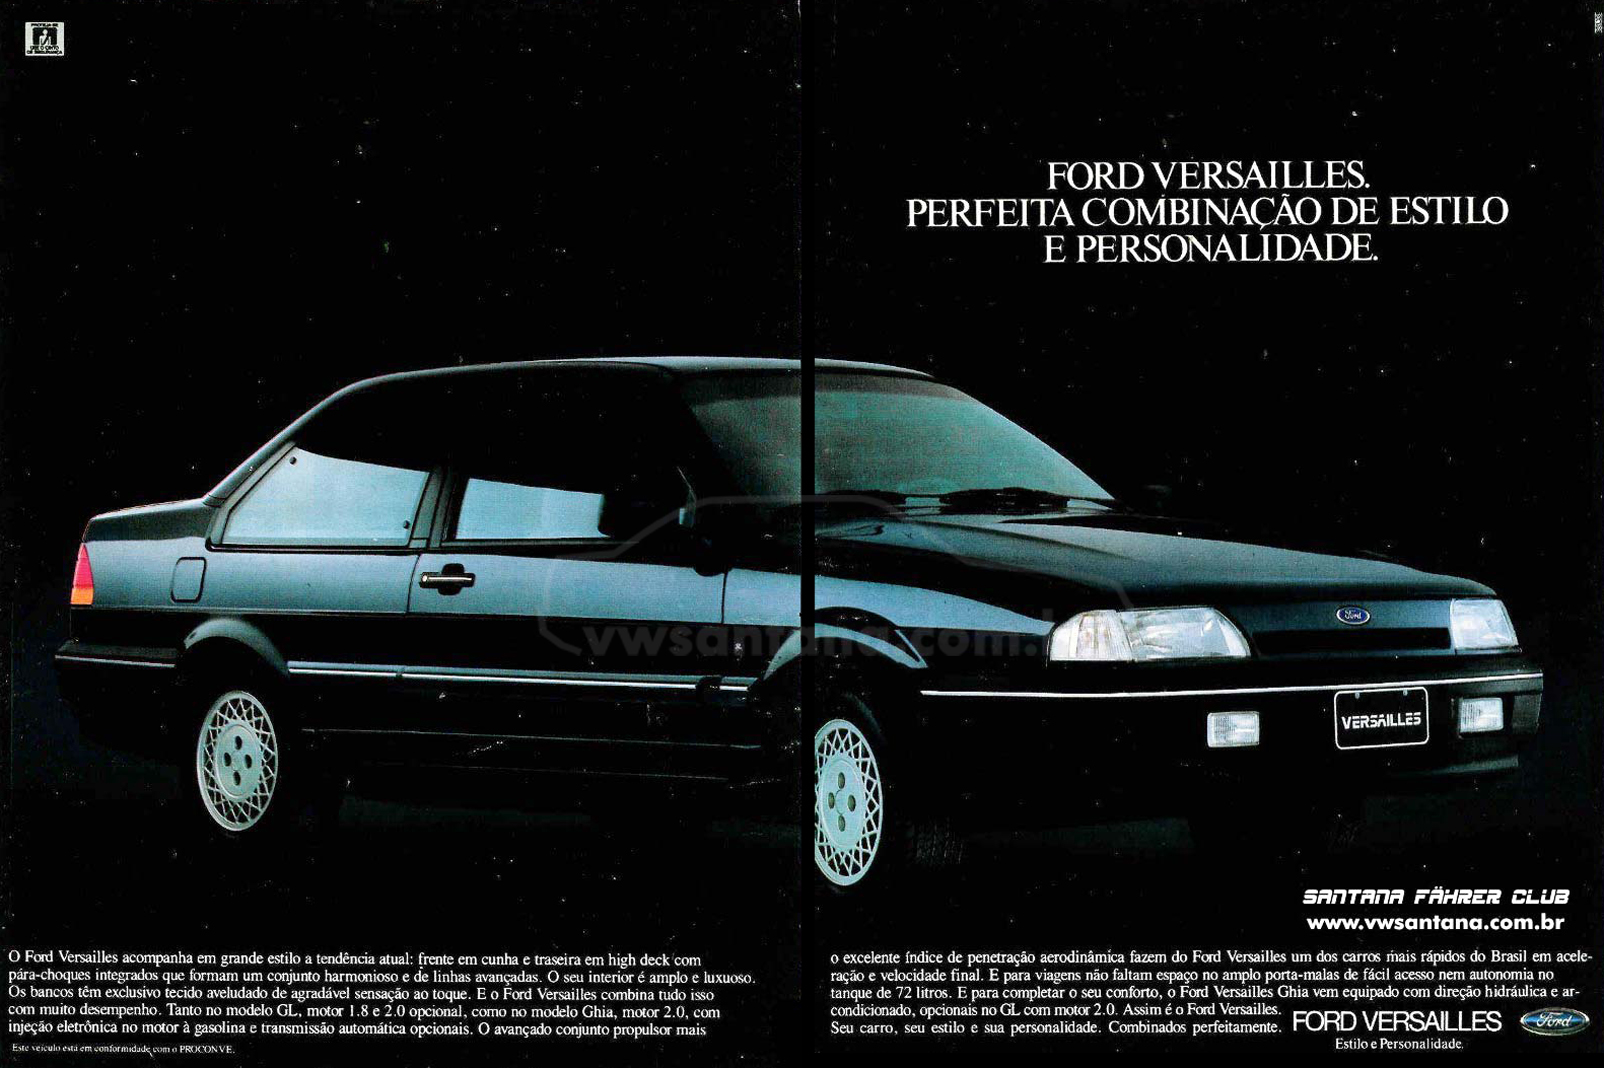 1998 Ford Versailles #23